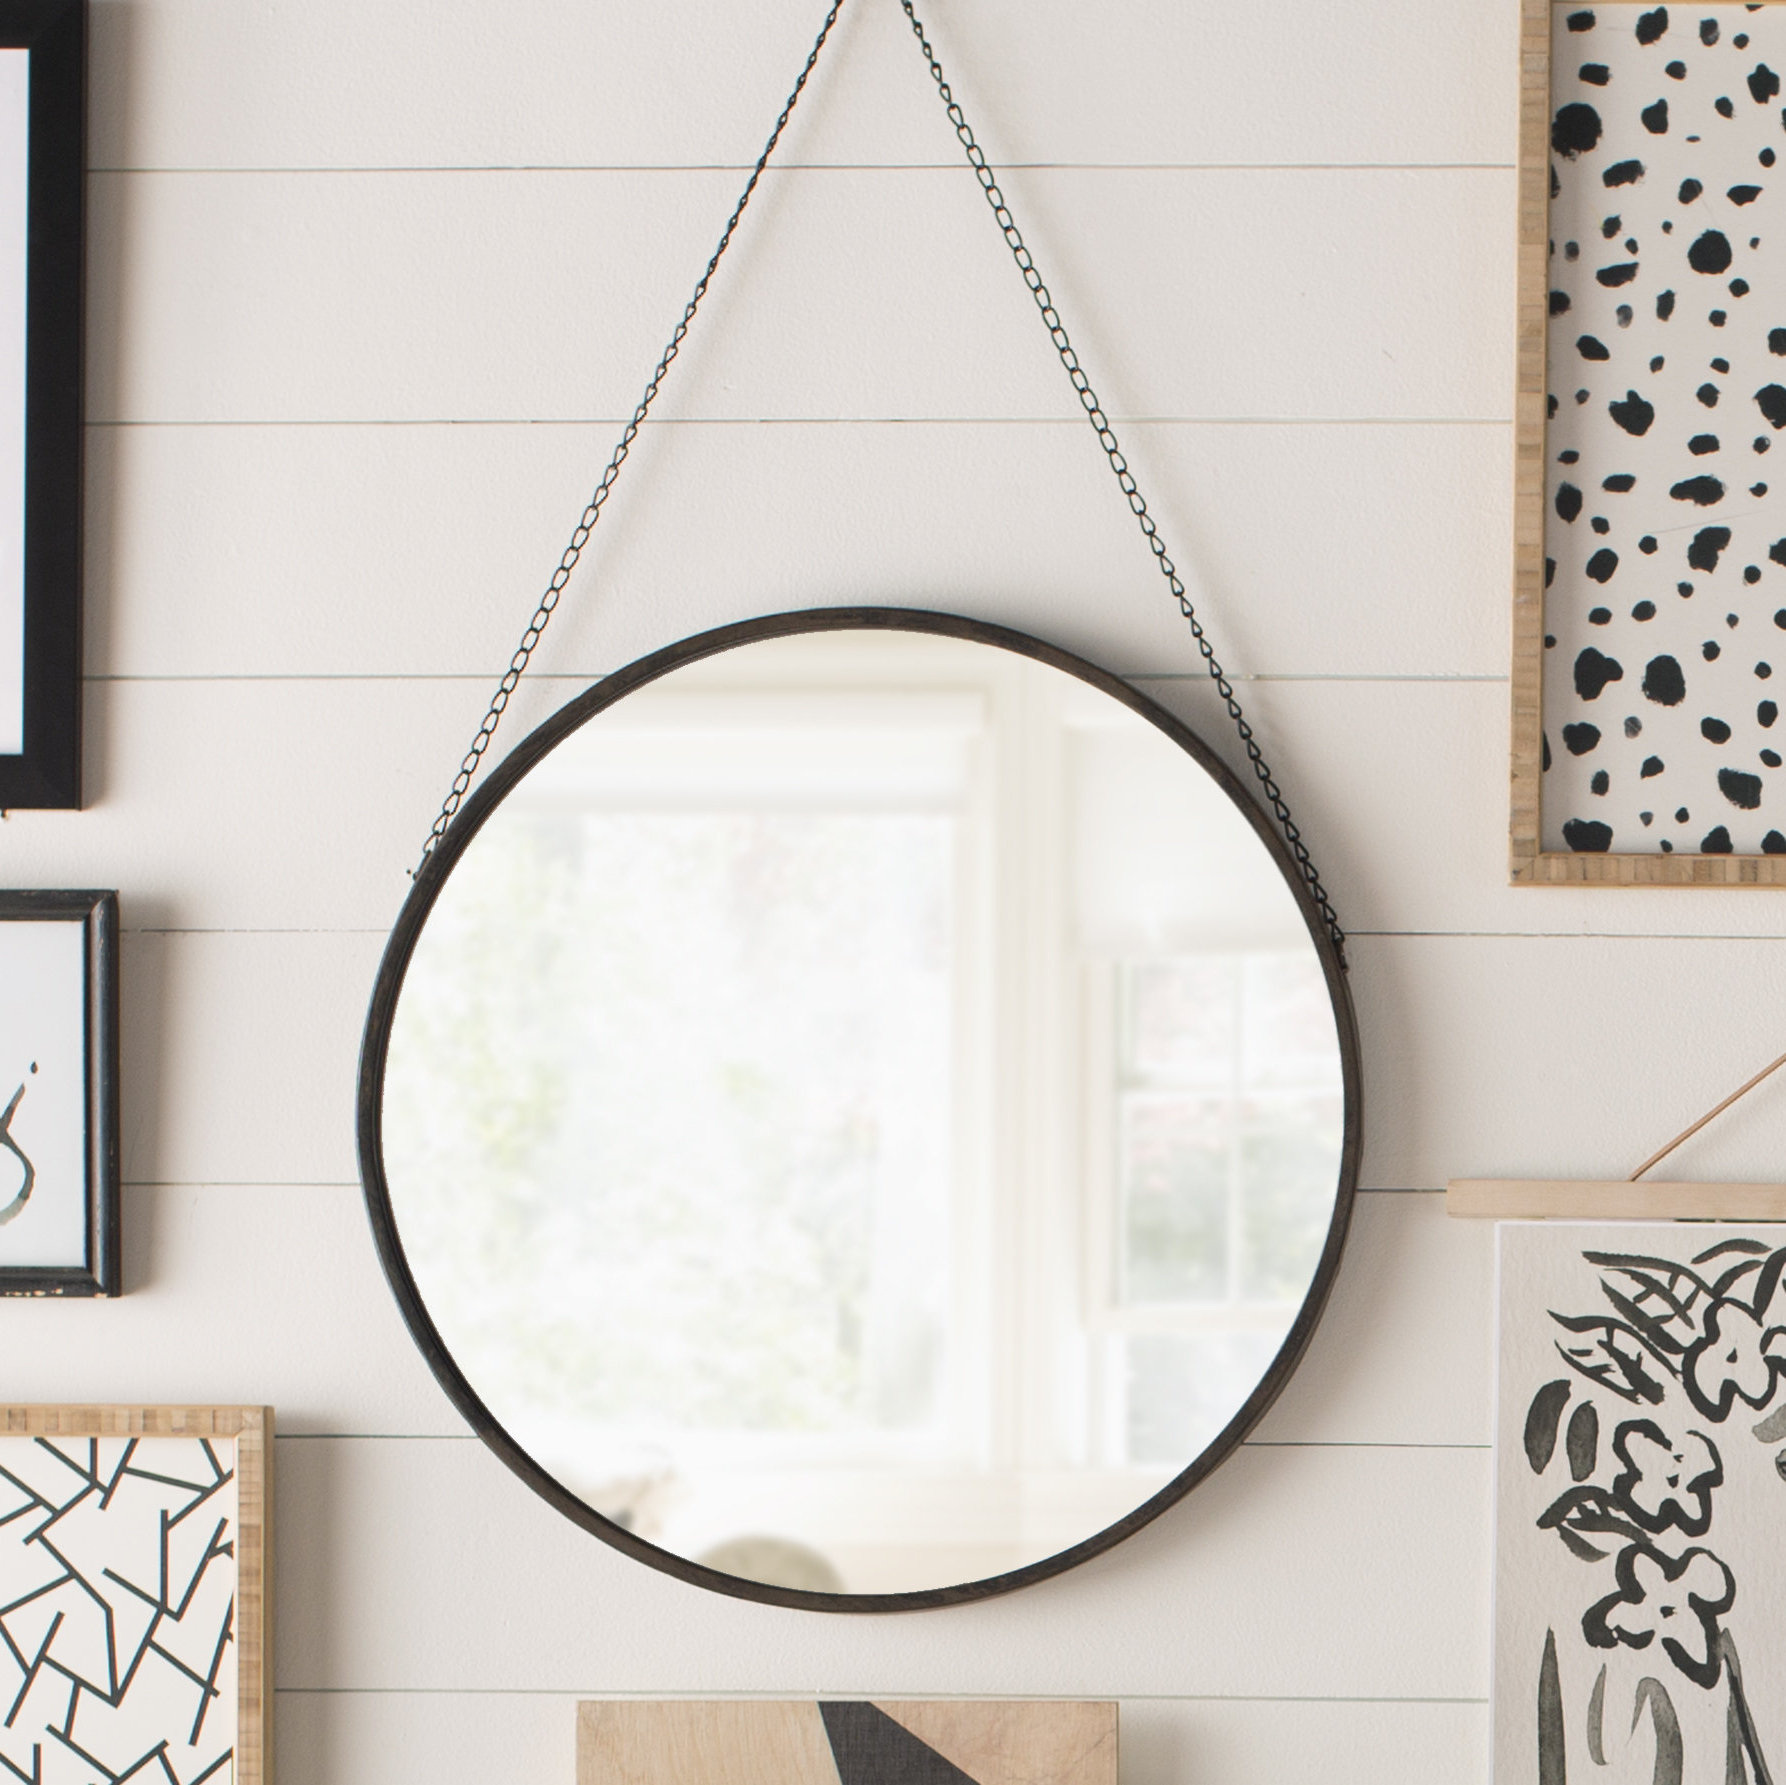 Latest Hardison With Chain Hanger Accent Mirror For Loftis Modern & Contemporary Accent Wall Mirrors (Gallery 14 of 20)